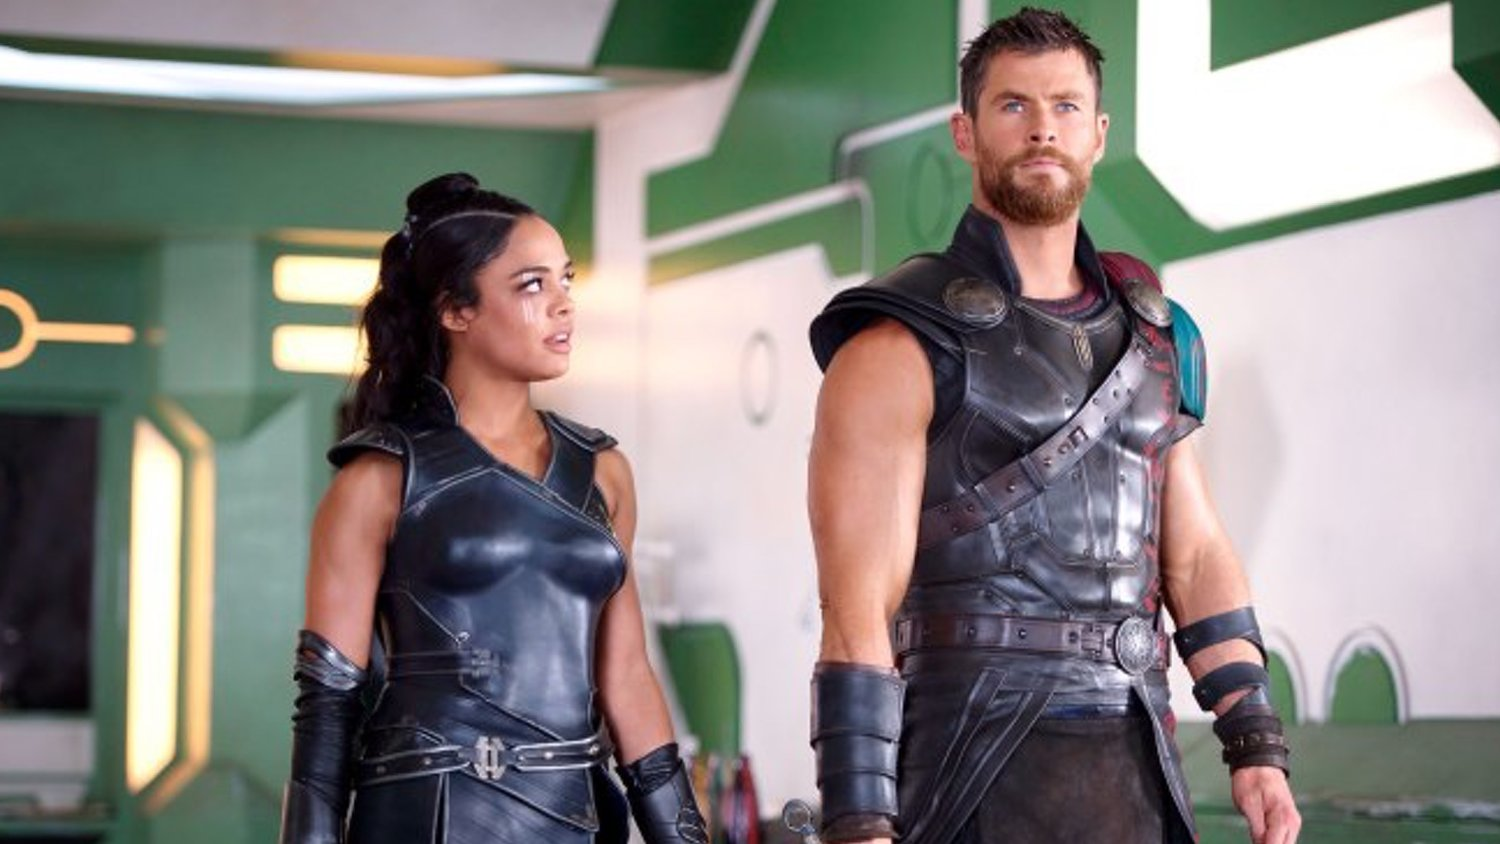 New Detailed Plot Information For THOR: RAGNAROK Revealed!